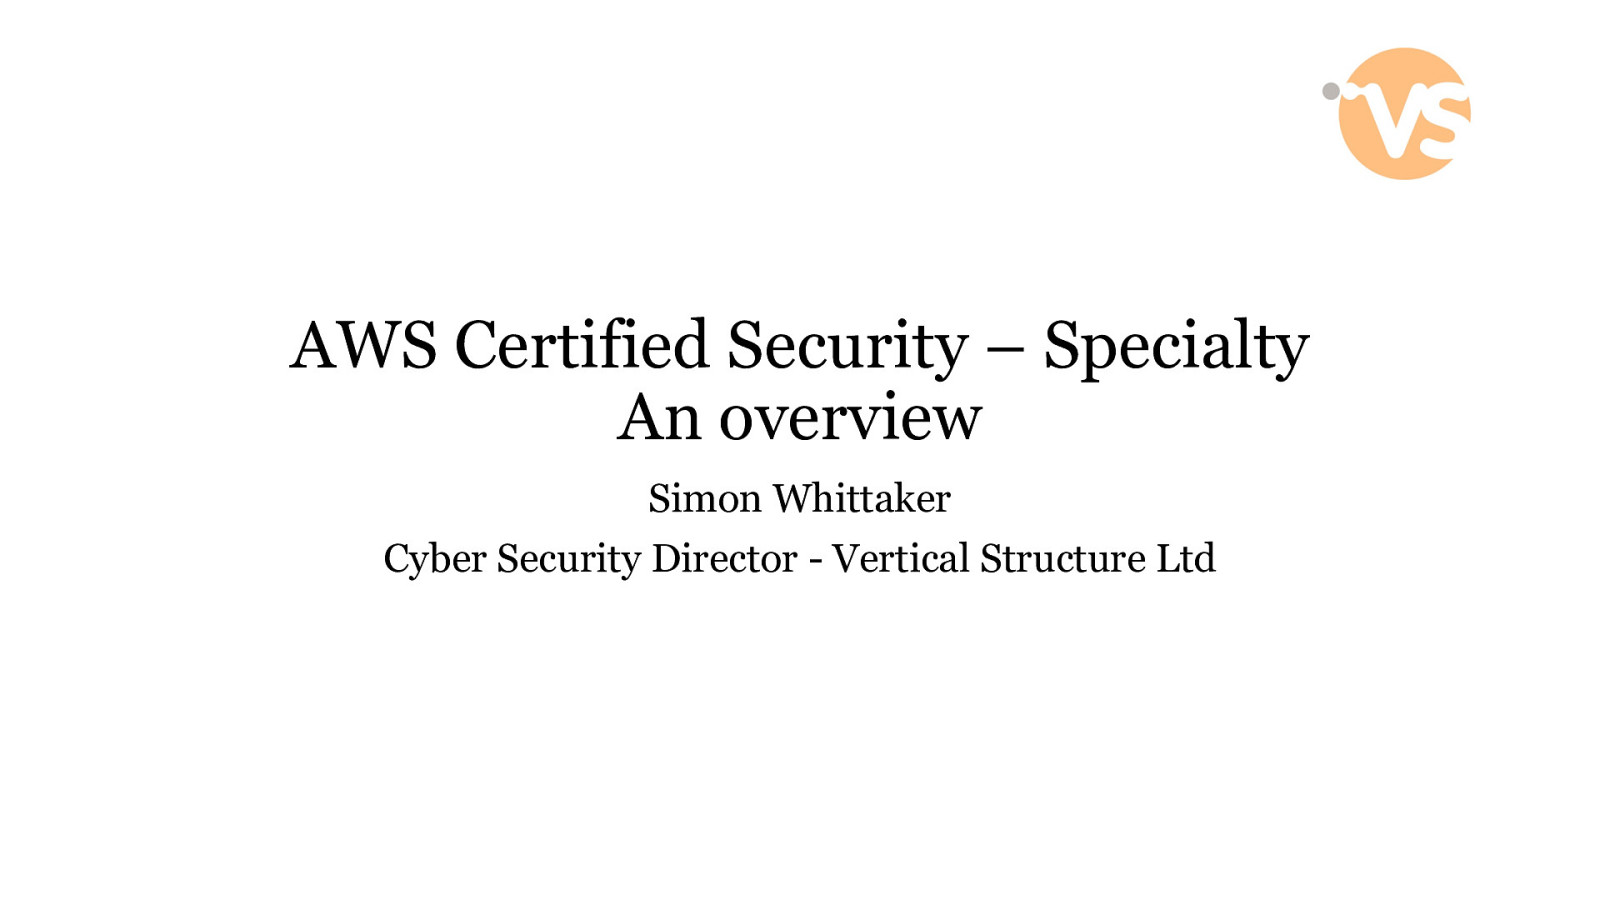 DevOps Belfast: 'AWS Certified Security - Speciality' - A general overview